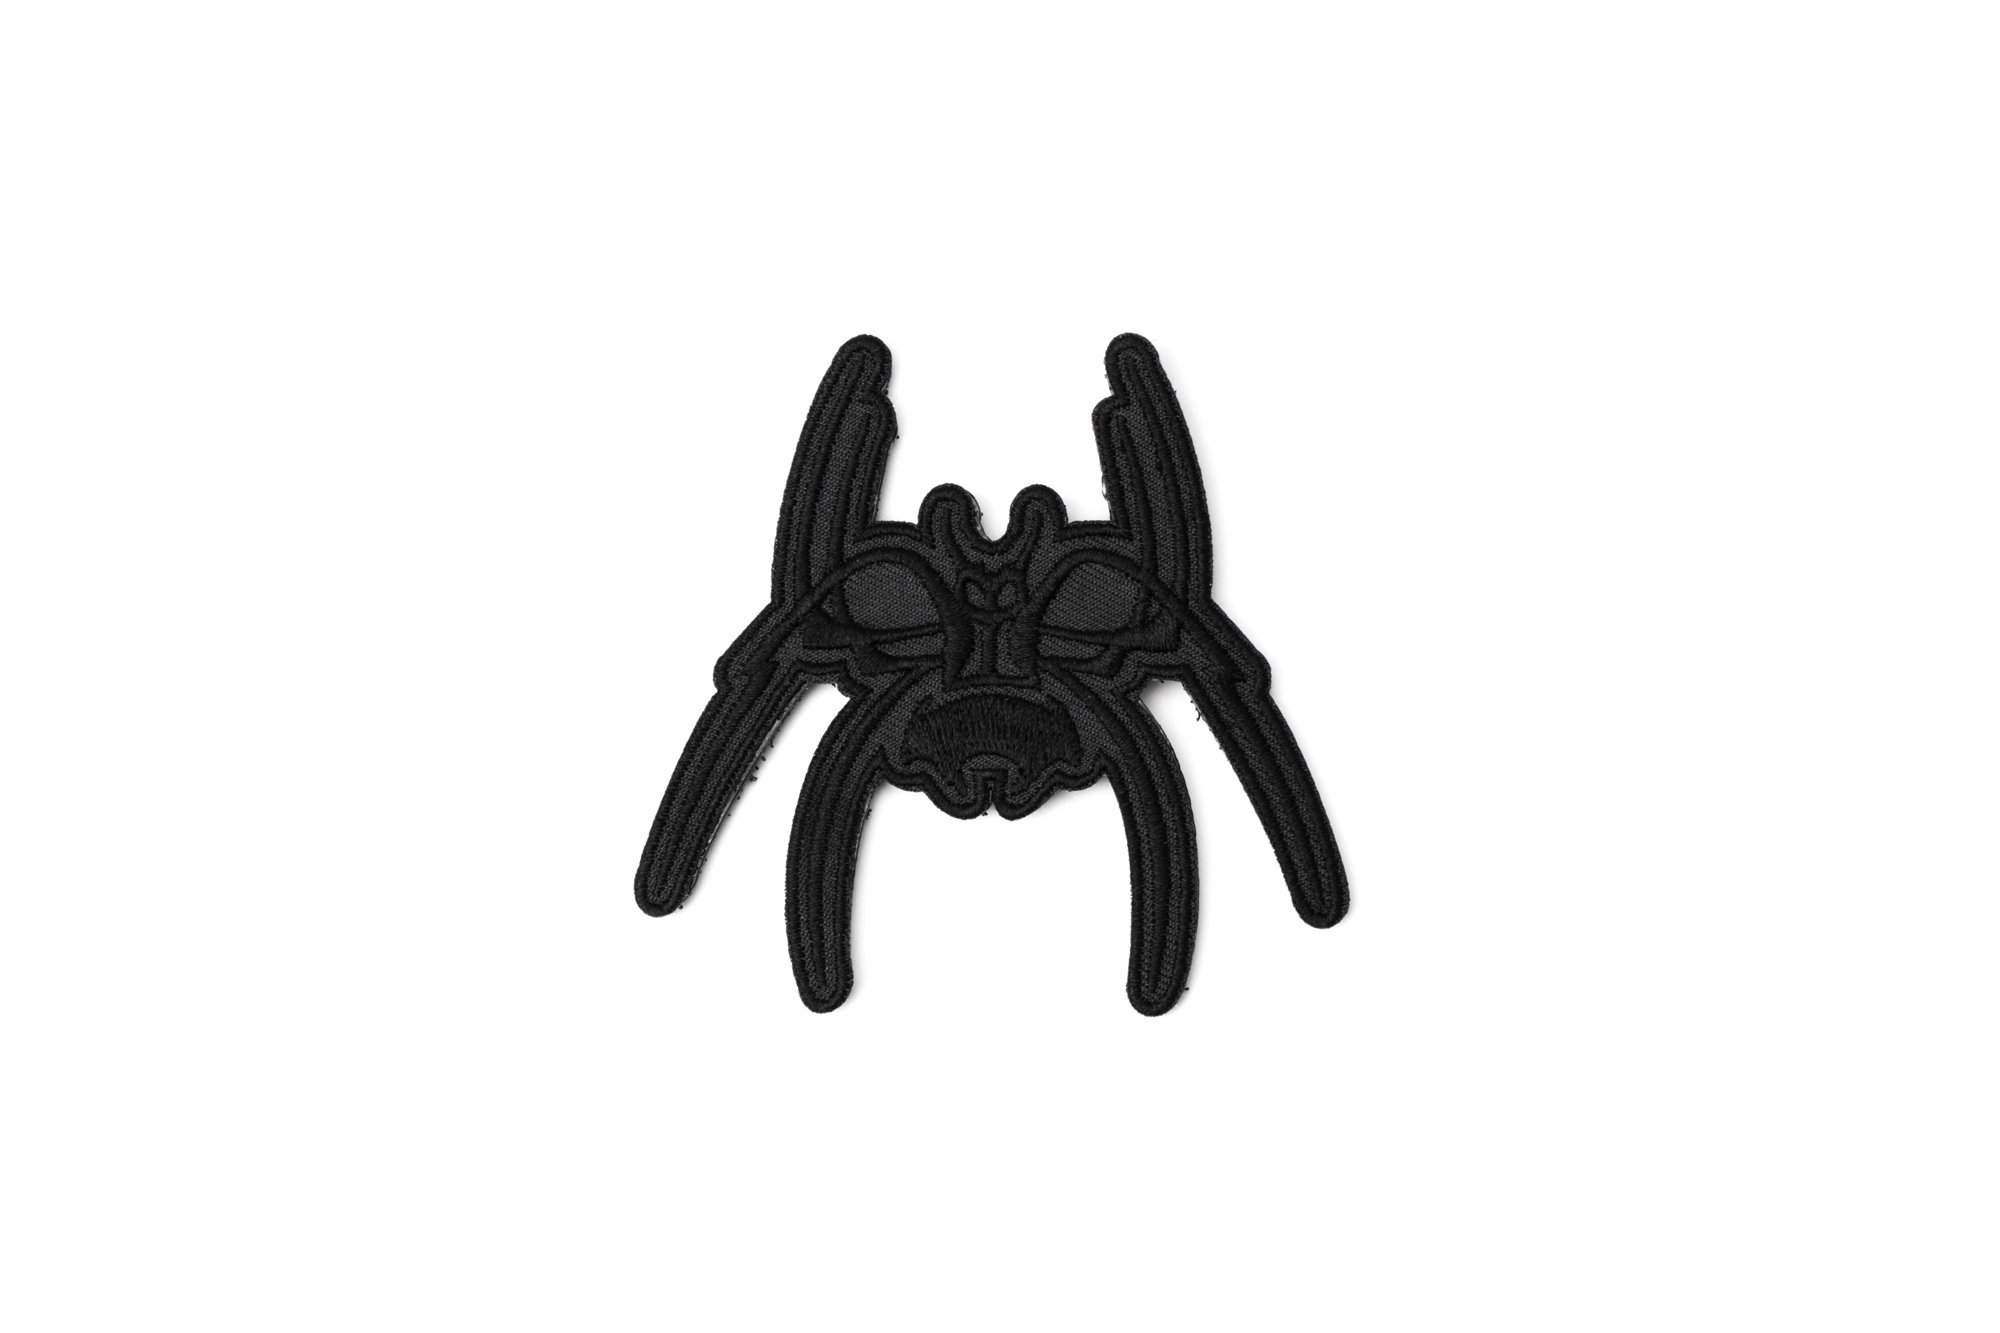 Limited Run Spider Patch